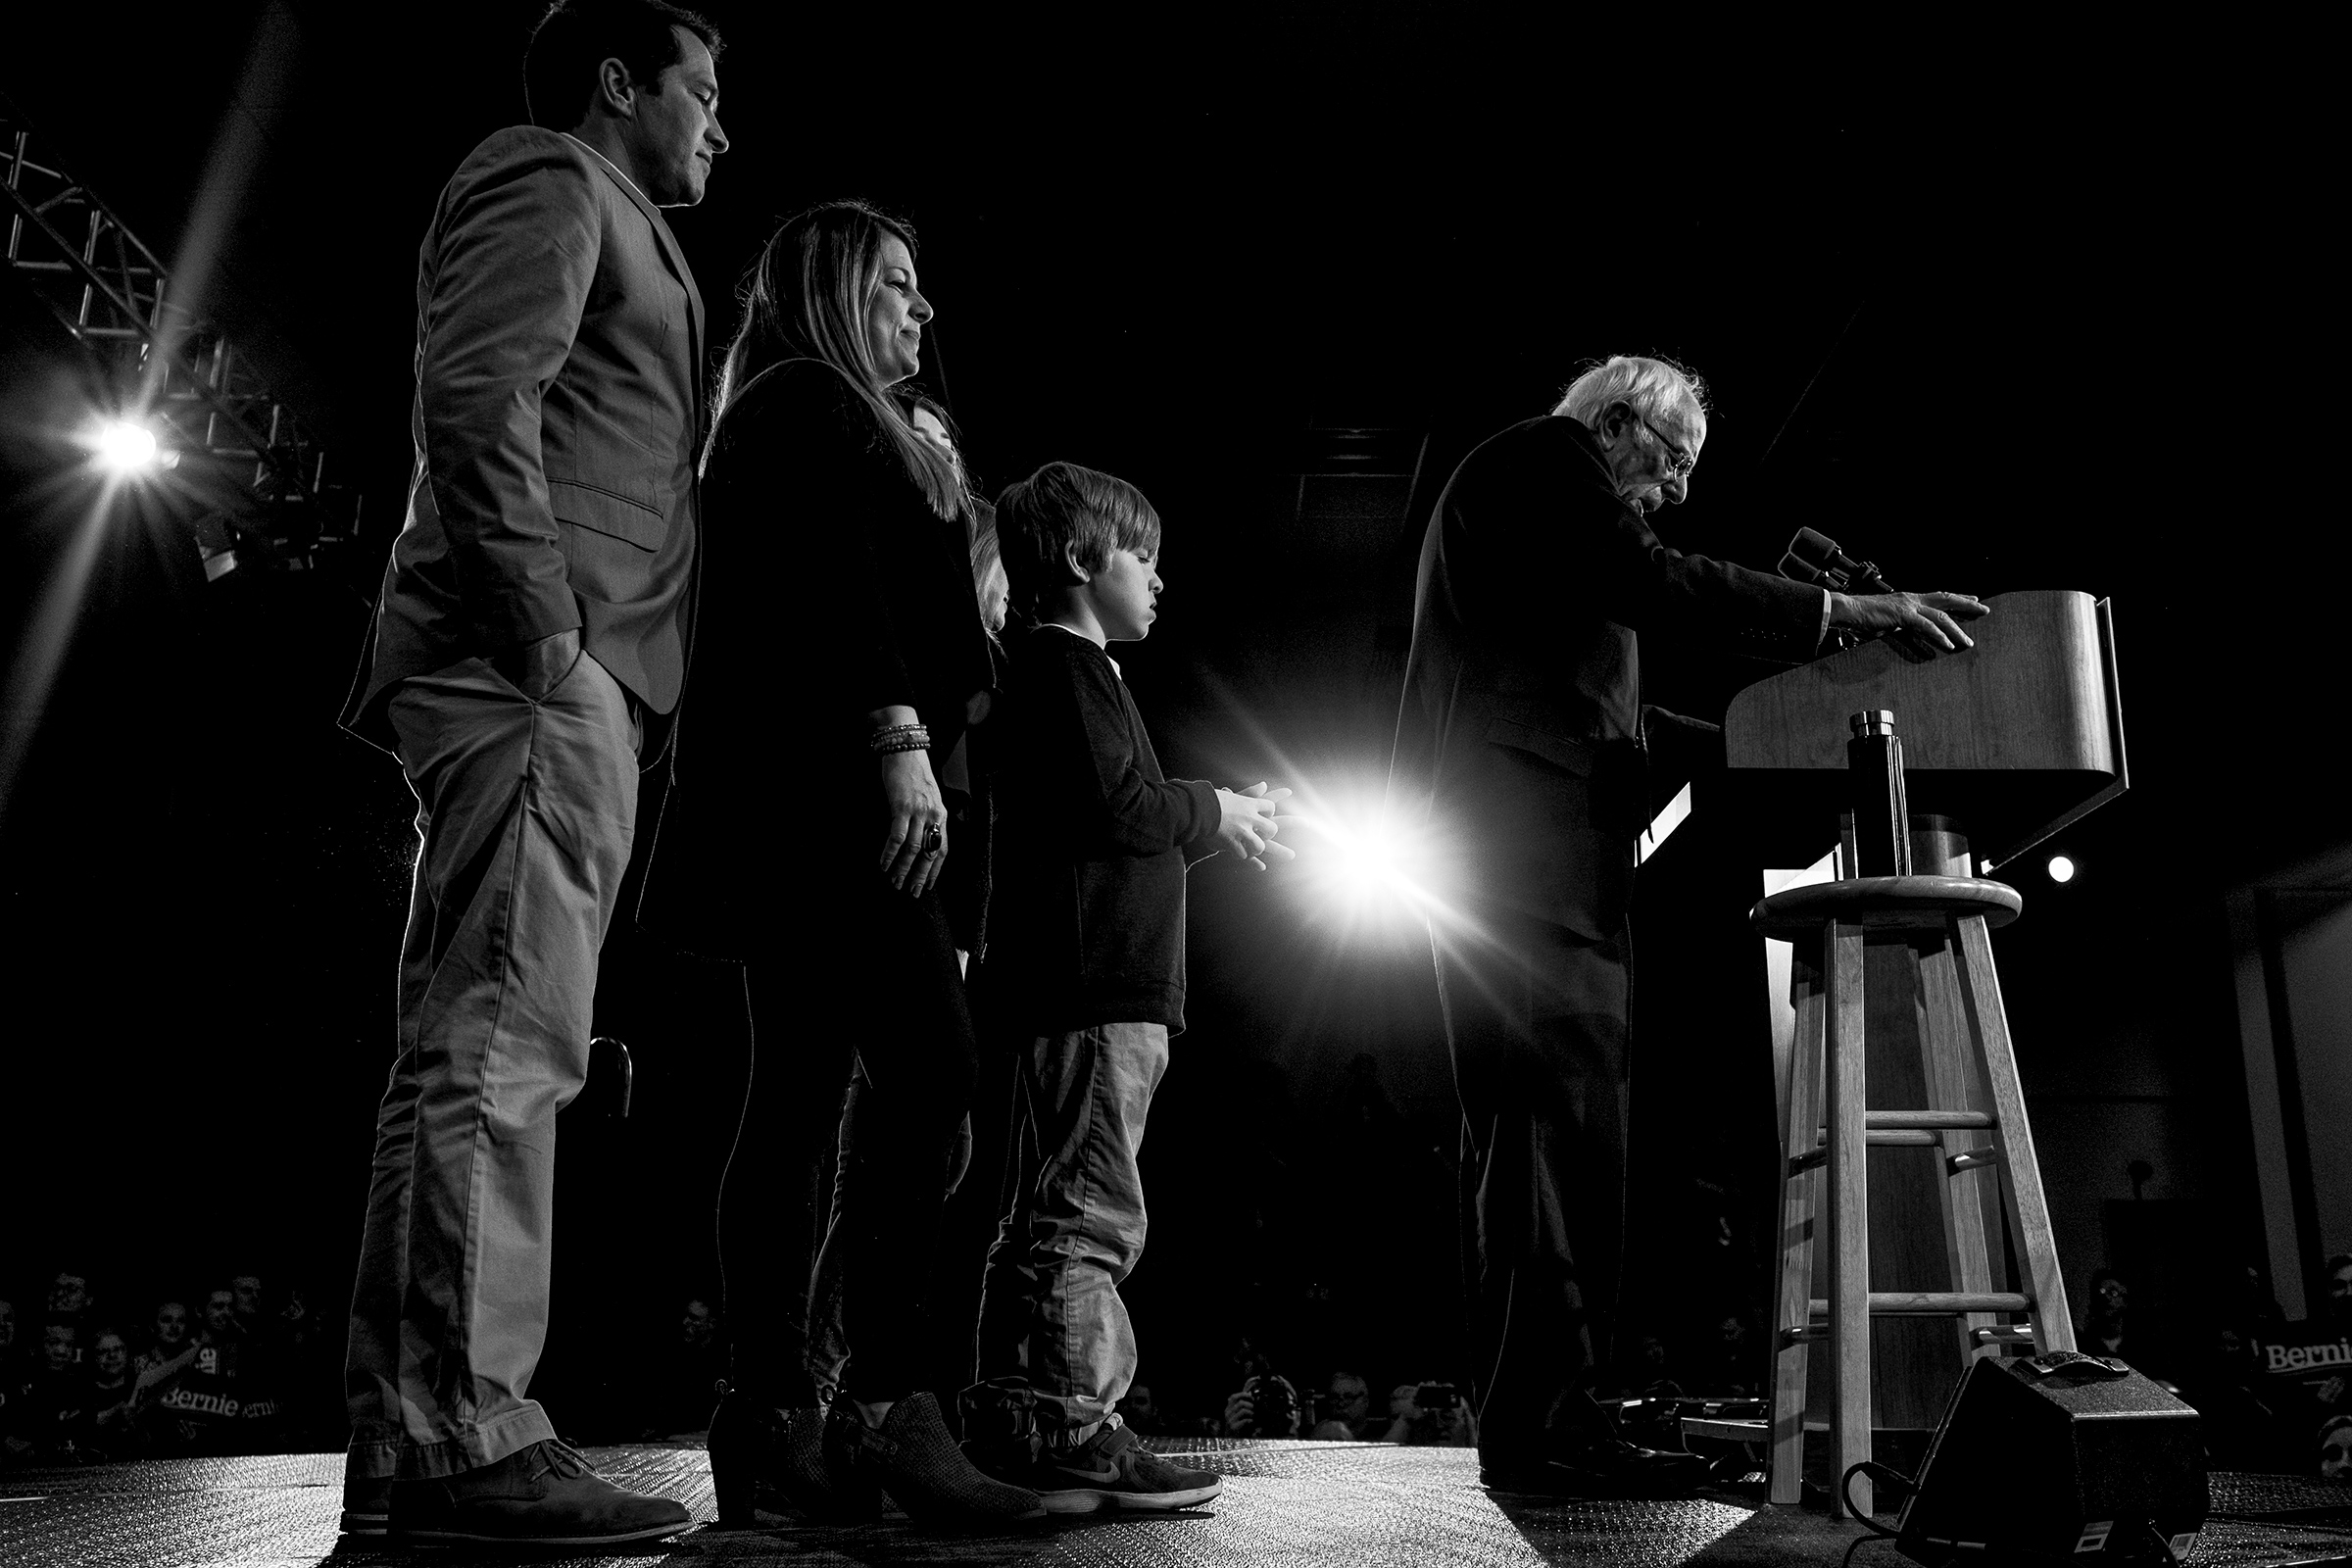 Sen. Bernie Sanders speaks during his Caucus Night Celebration on stage with his family in Des Moines, Iowa on Feb. 3, 2020.